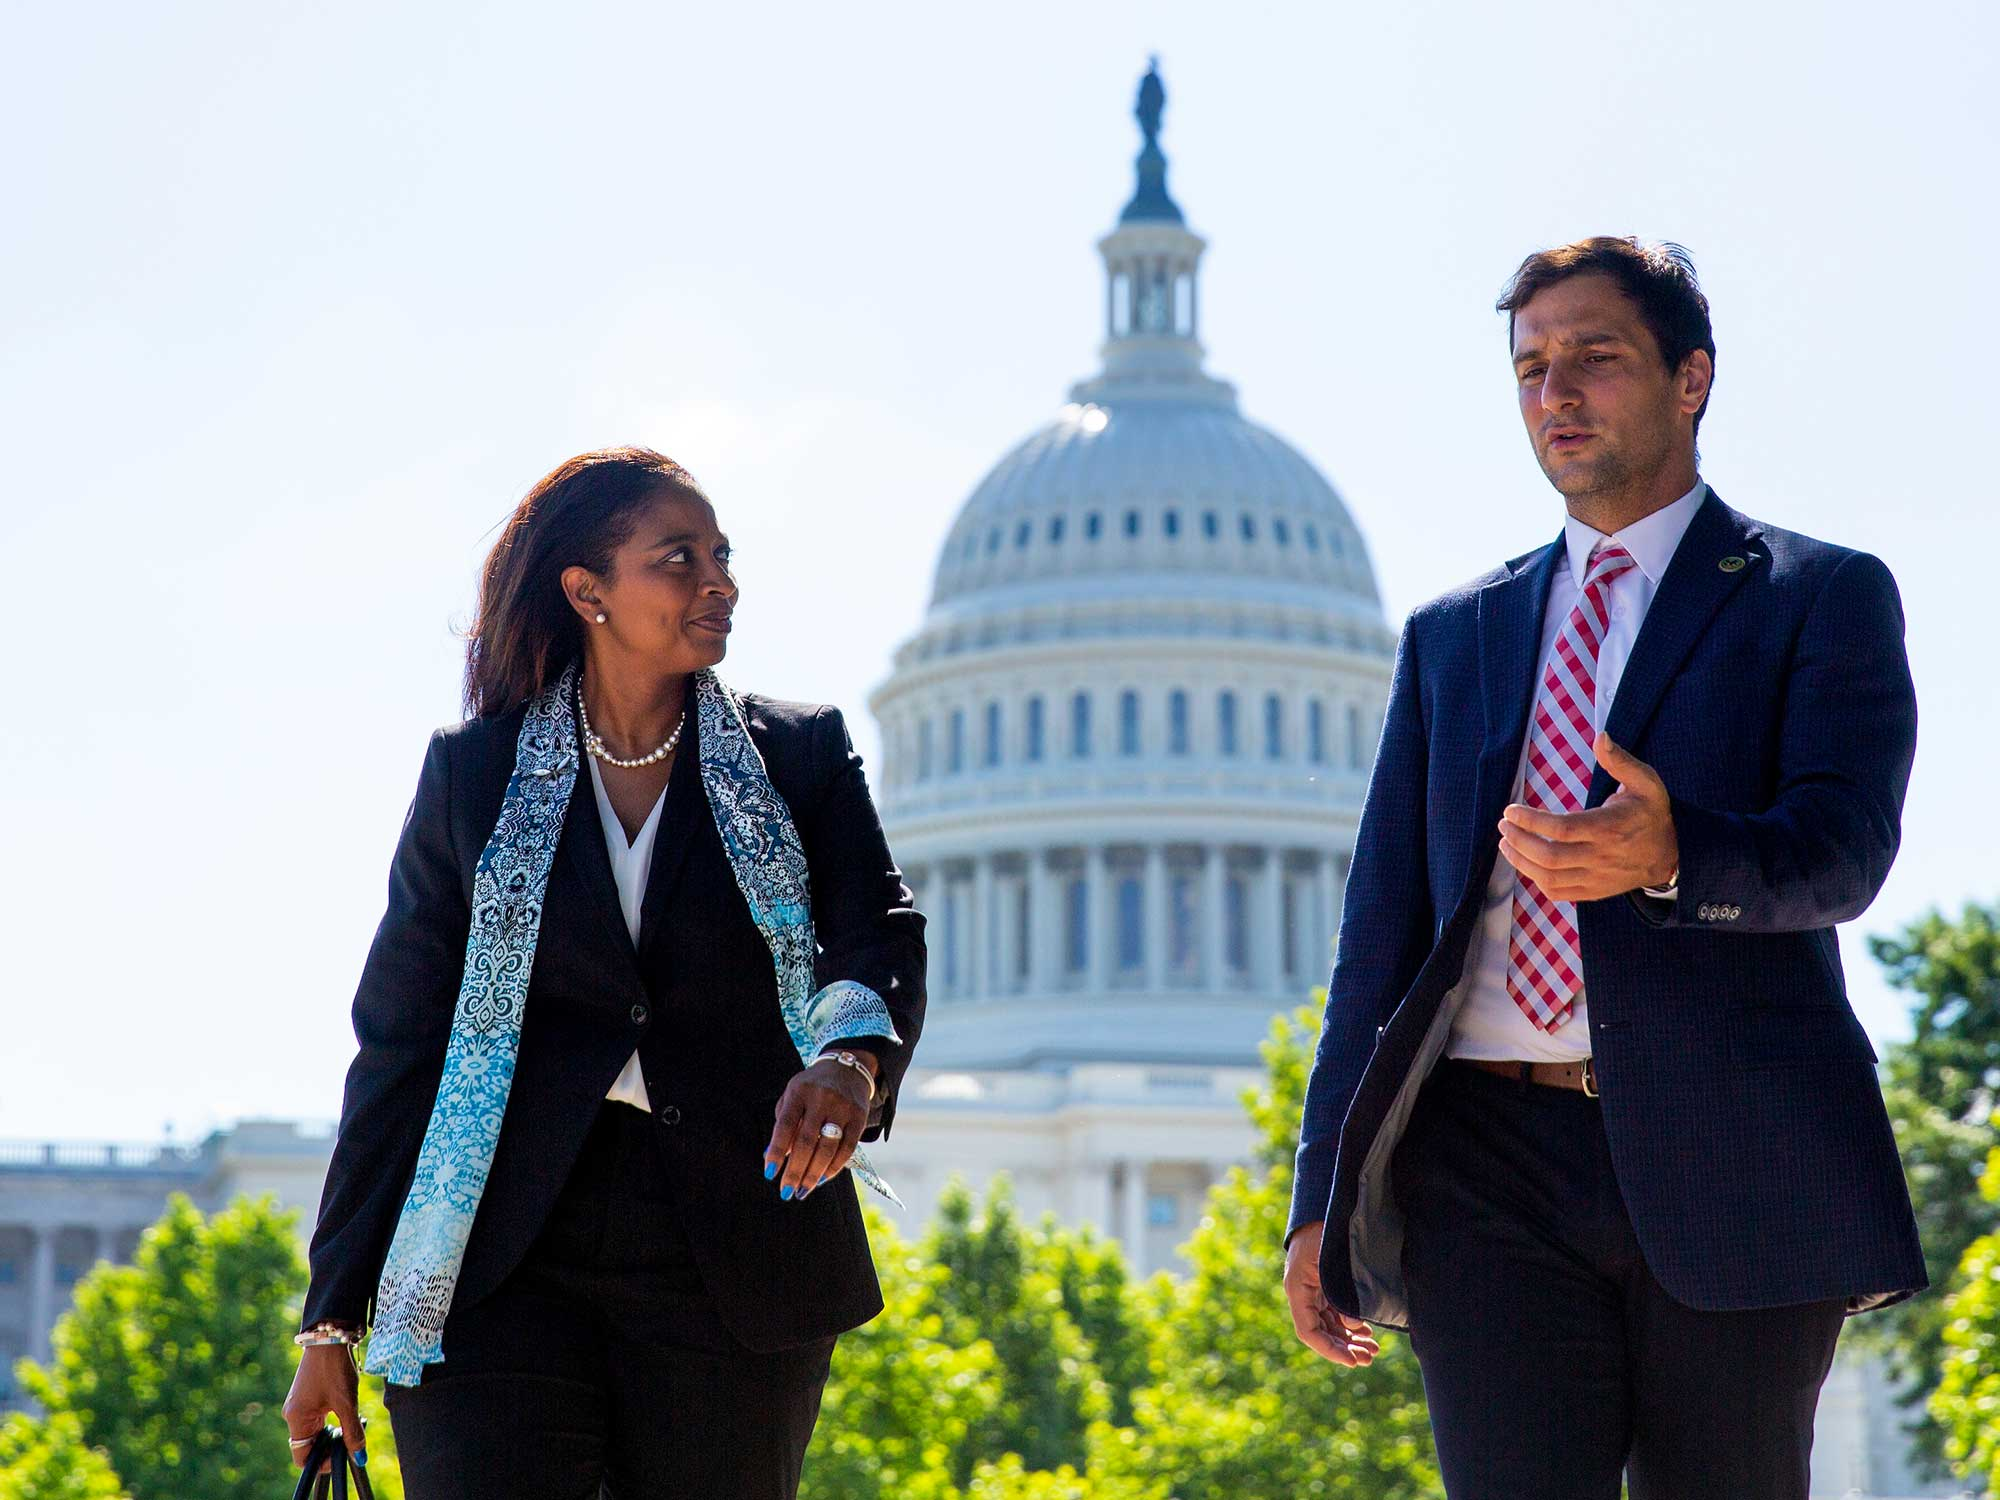 Students walking on Capitol Hill